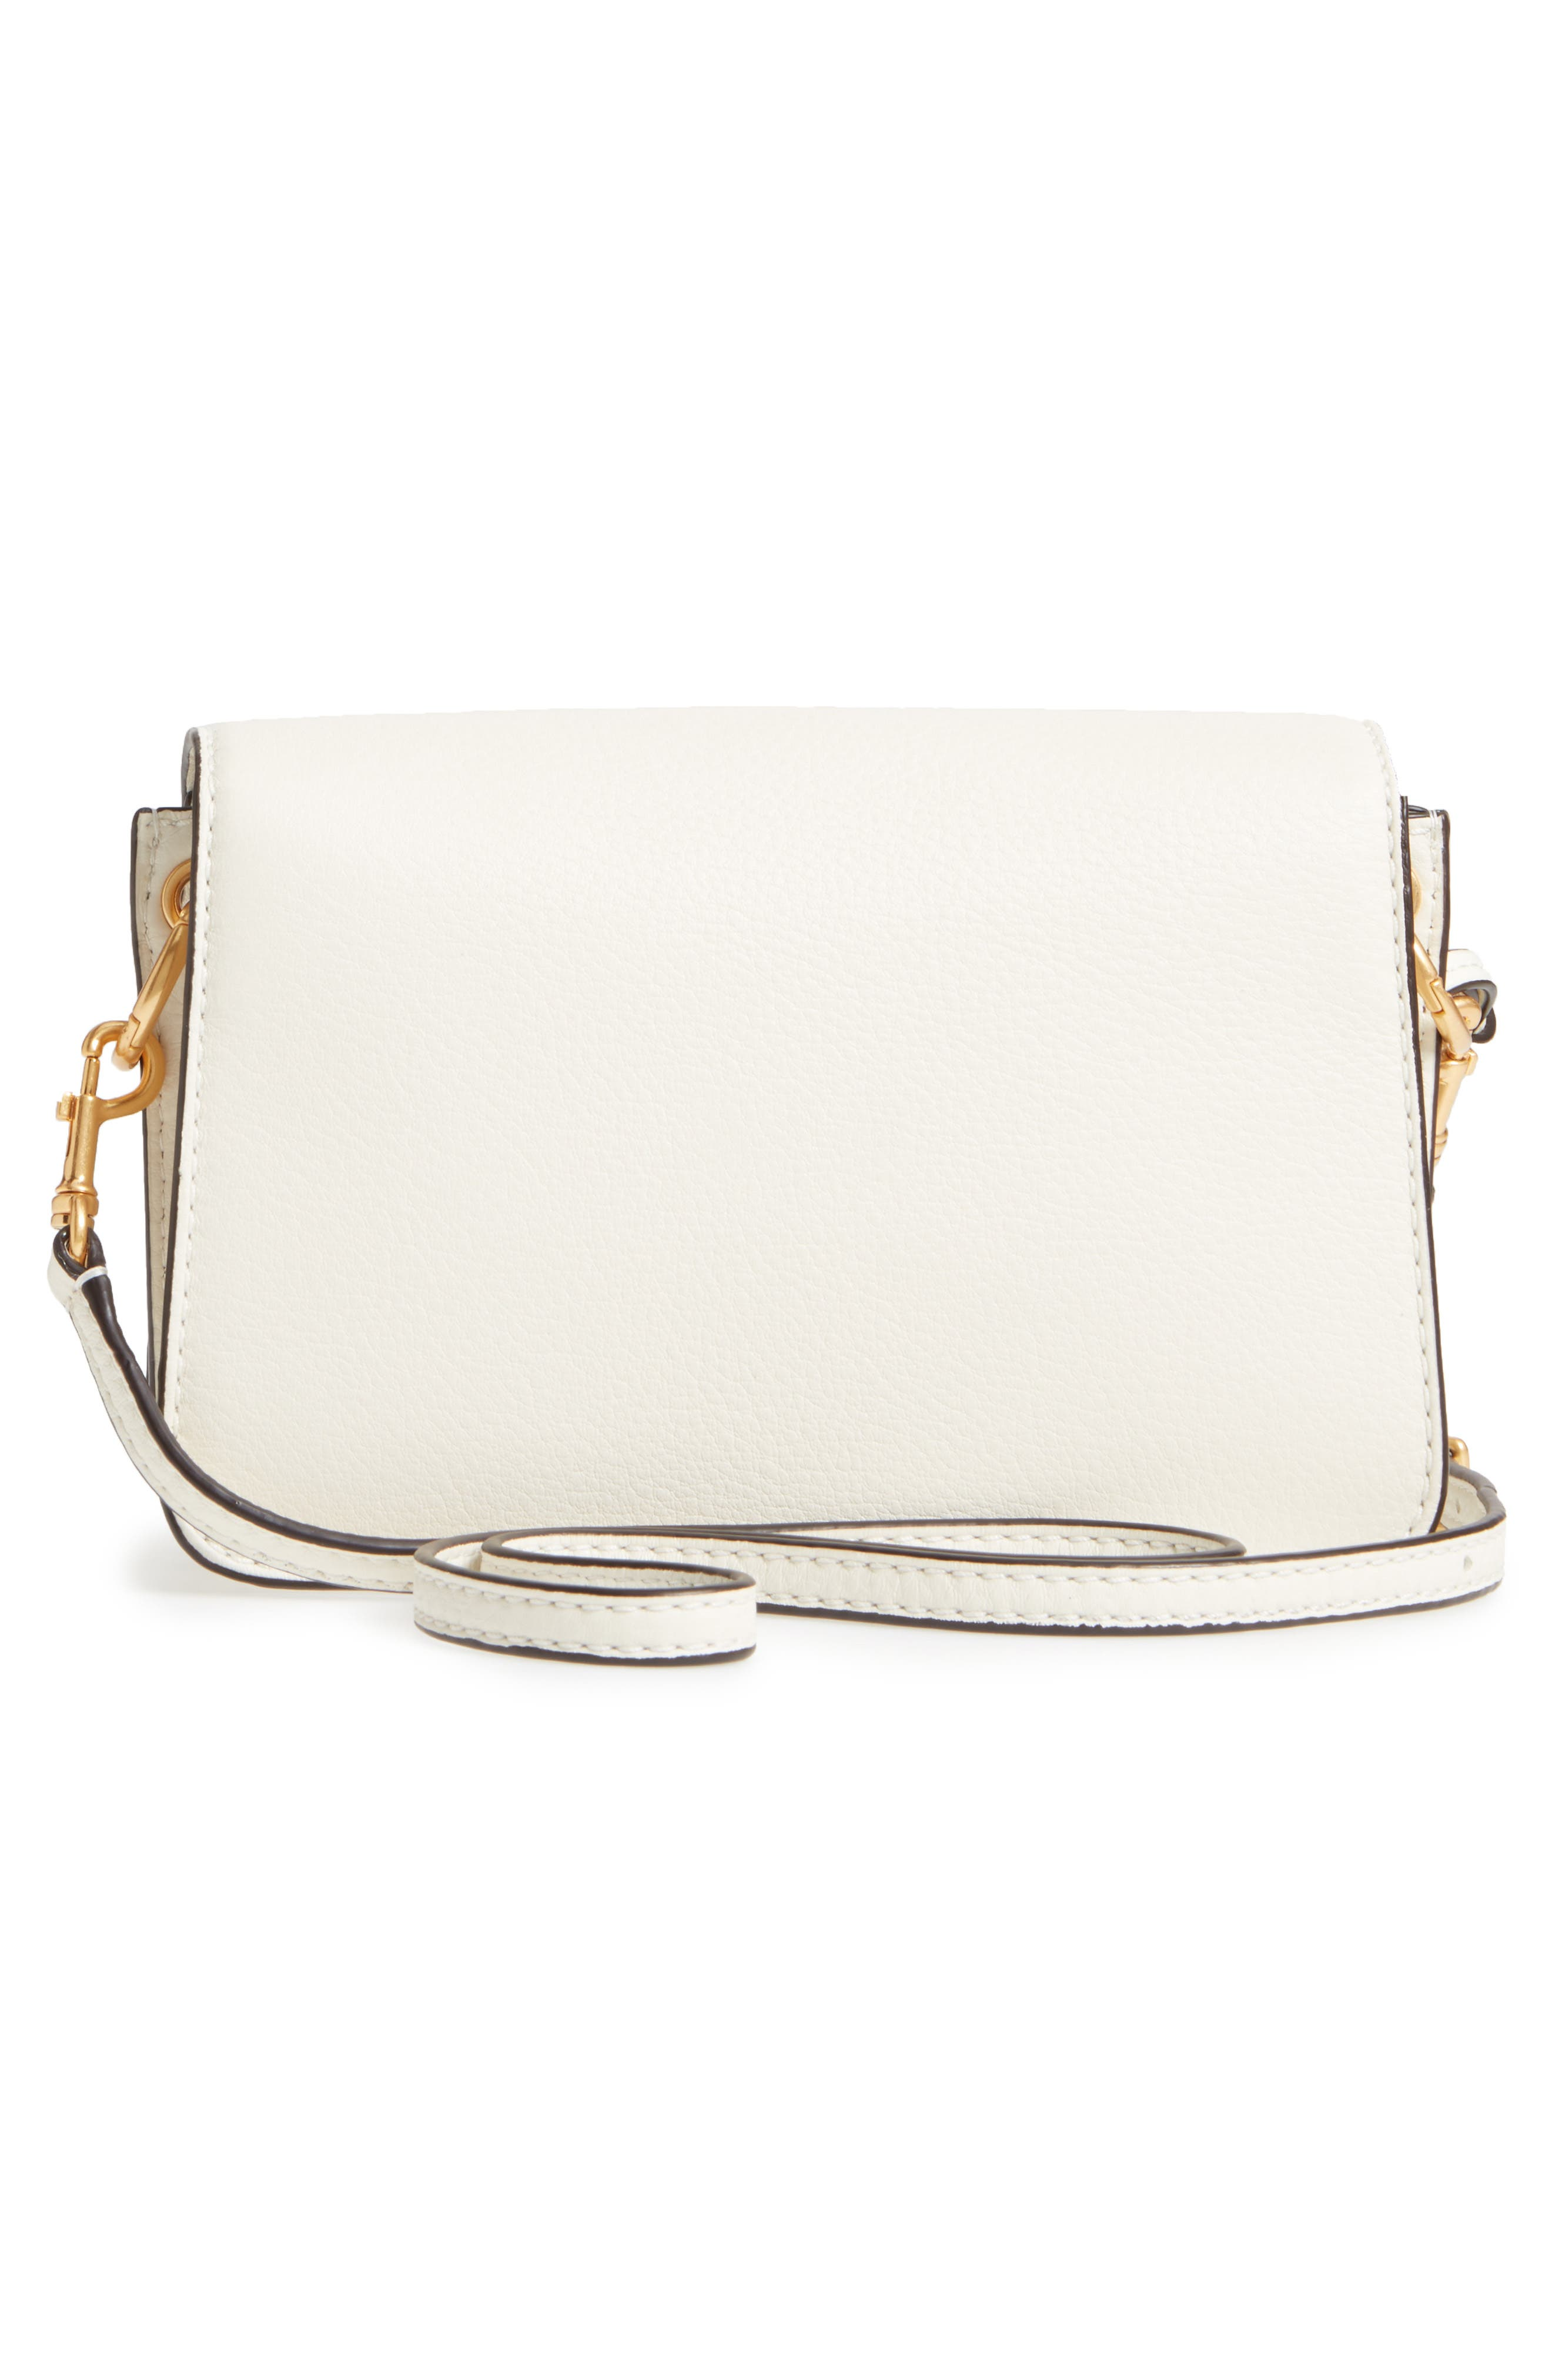 McGraw Whipstitch Leather Crossbody Bag,                             Alternate thumbnail 3, color,                             100